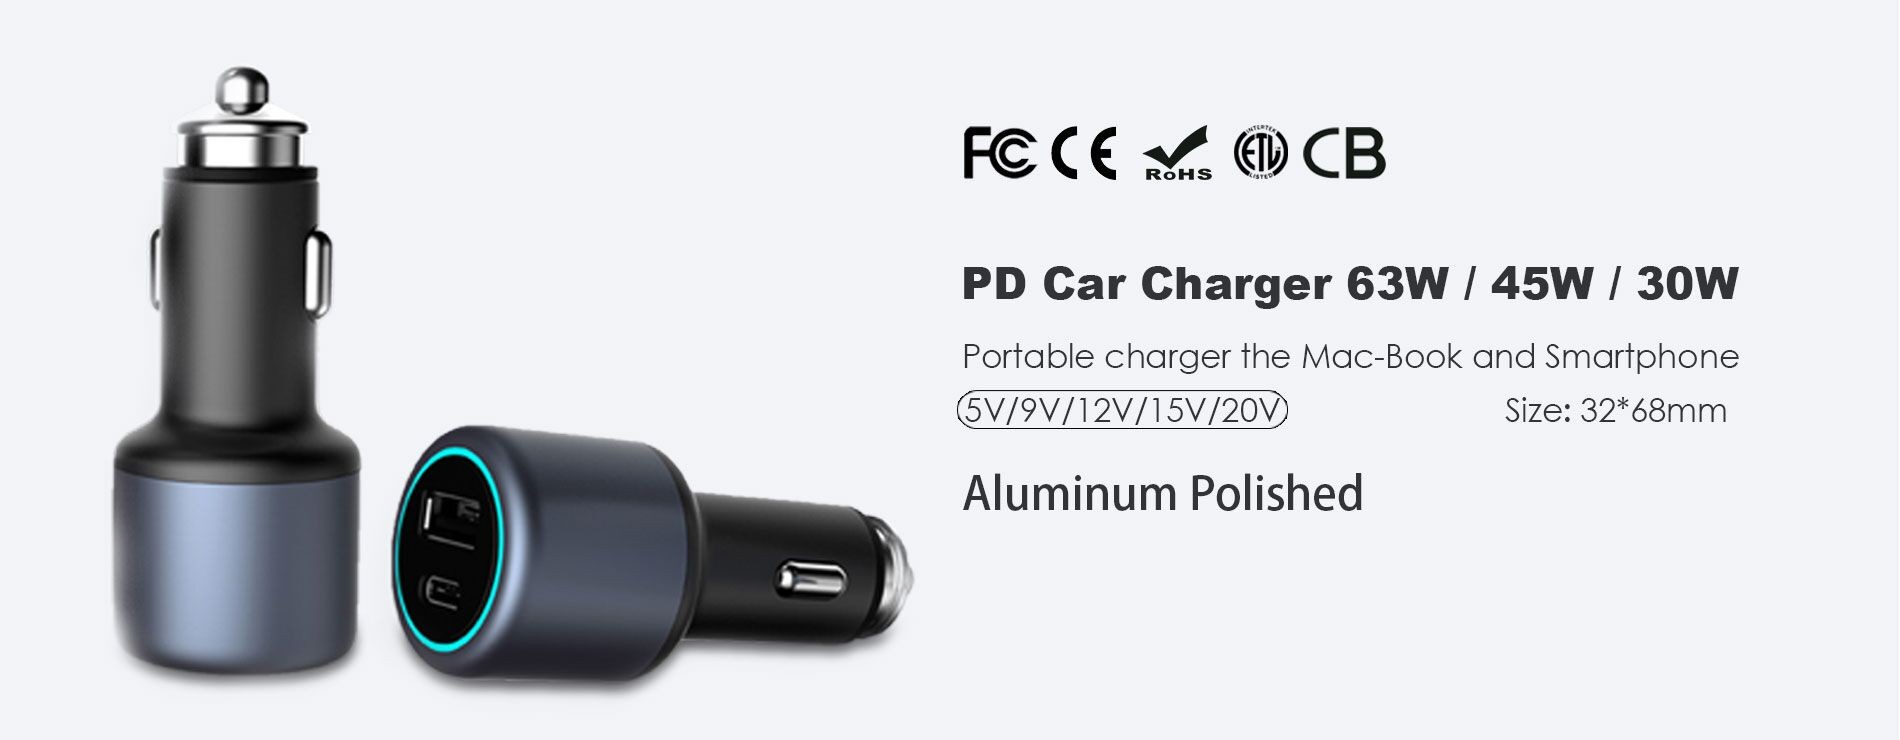 PD car charger 63W/45W/30W